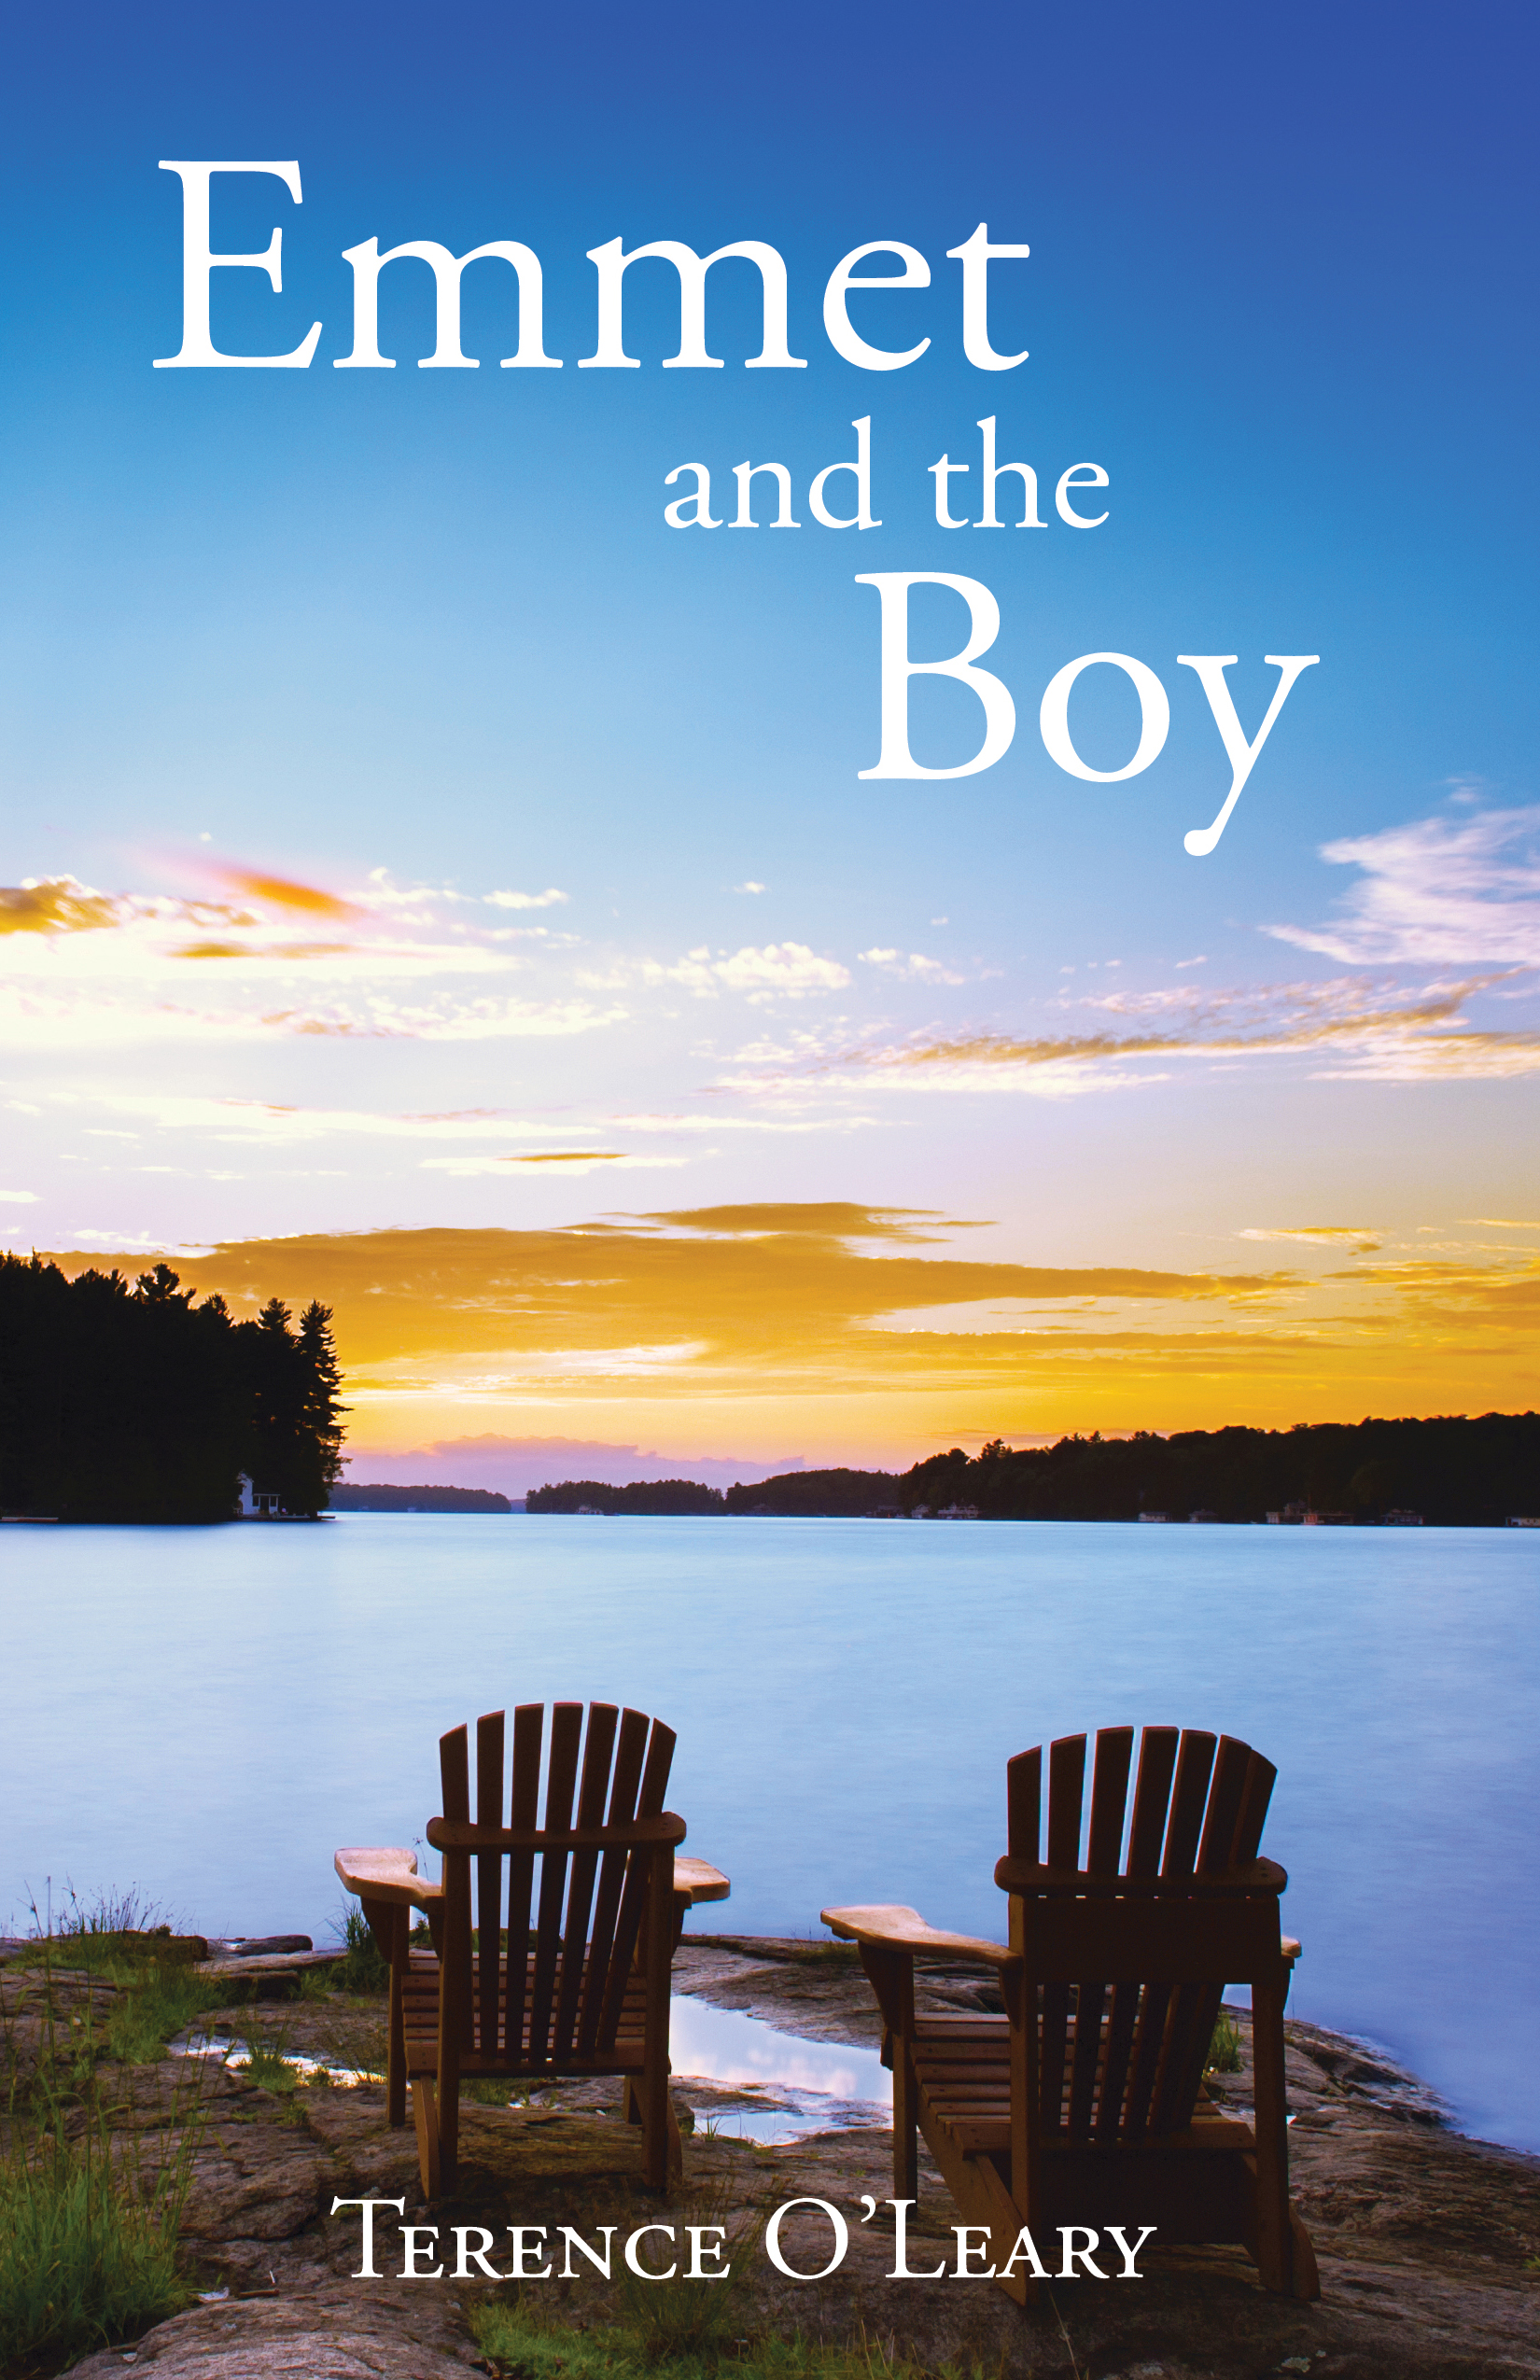 Emmet and the Boy by Terence O'Leary